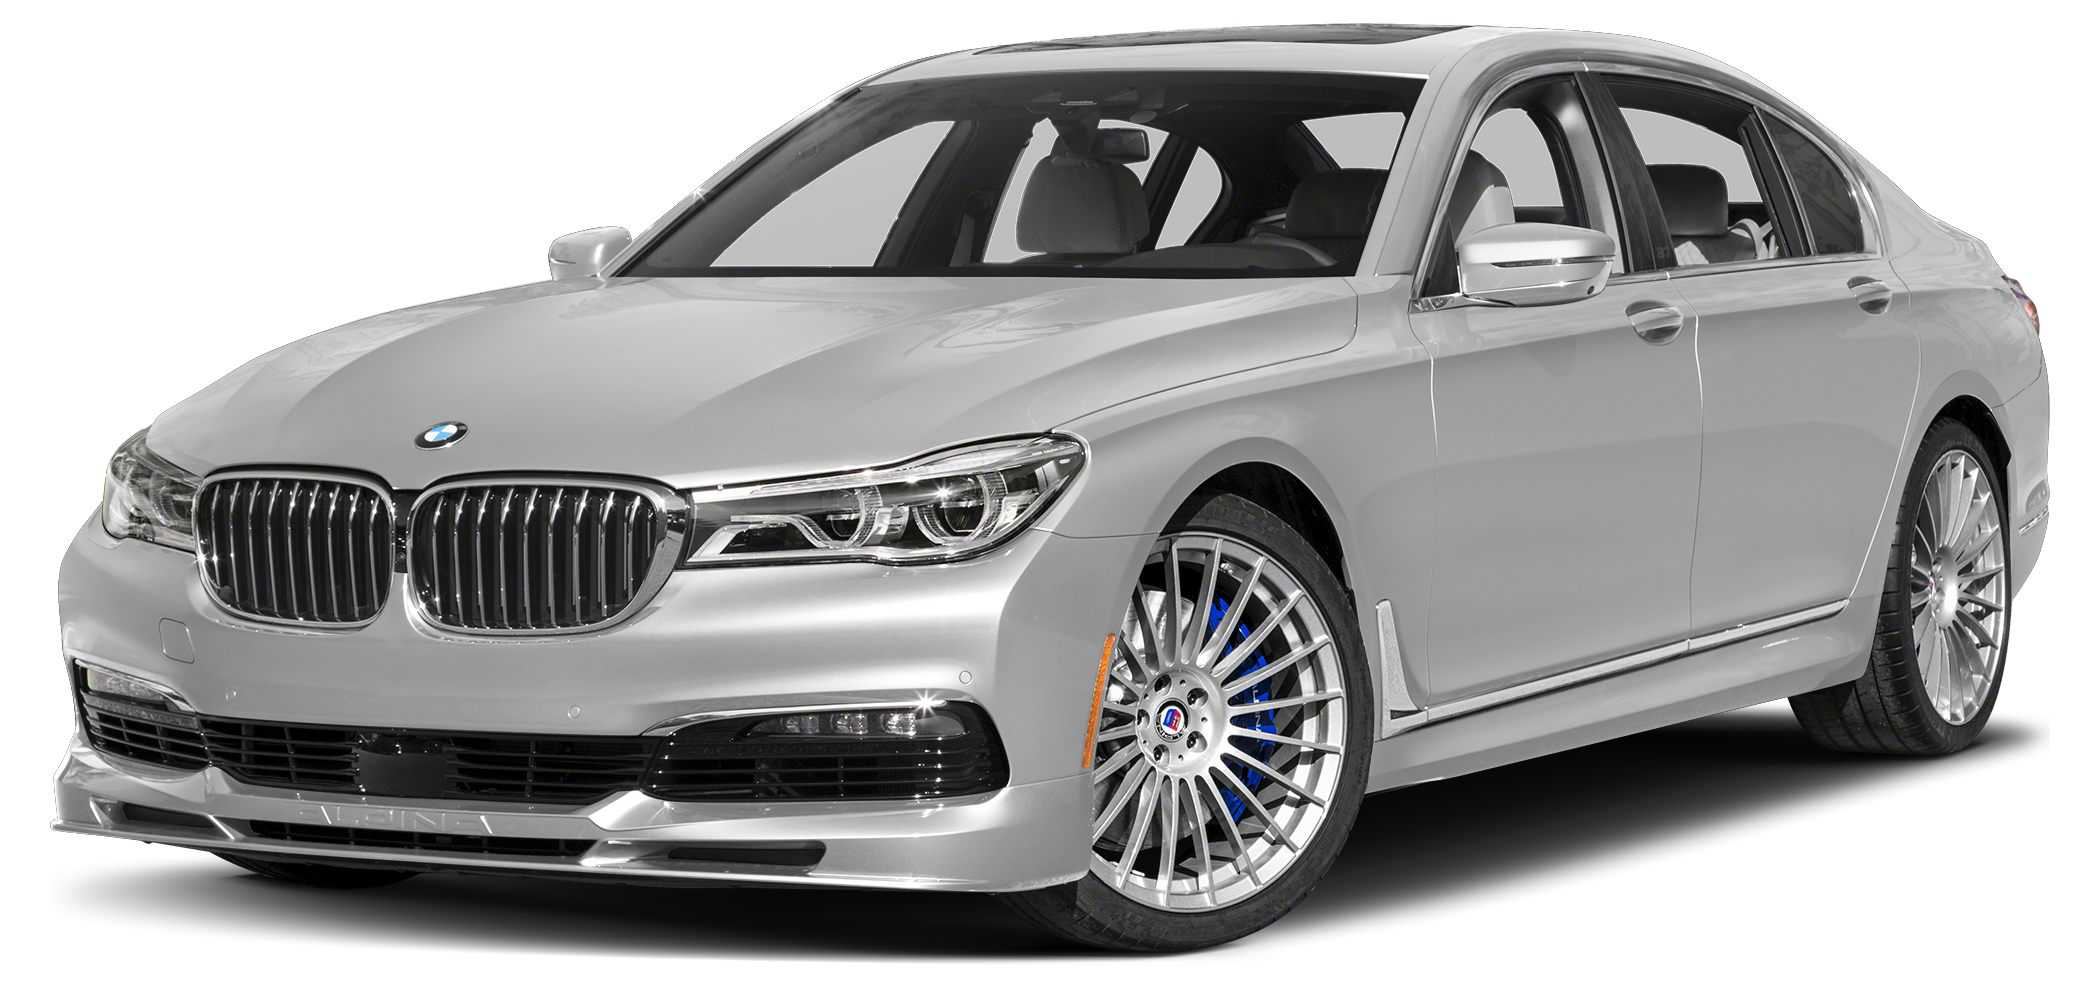 Used Cars Monroe La >> Reeves Bmw Used Cars | Upcomingcarshq.com